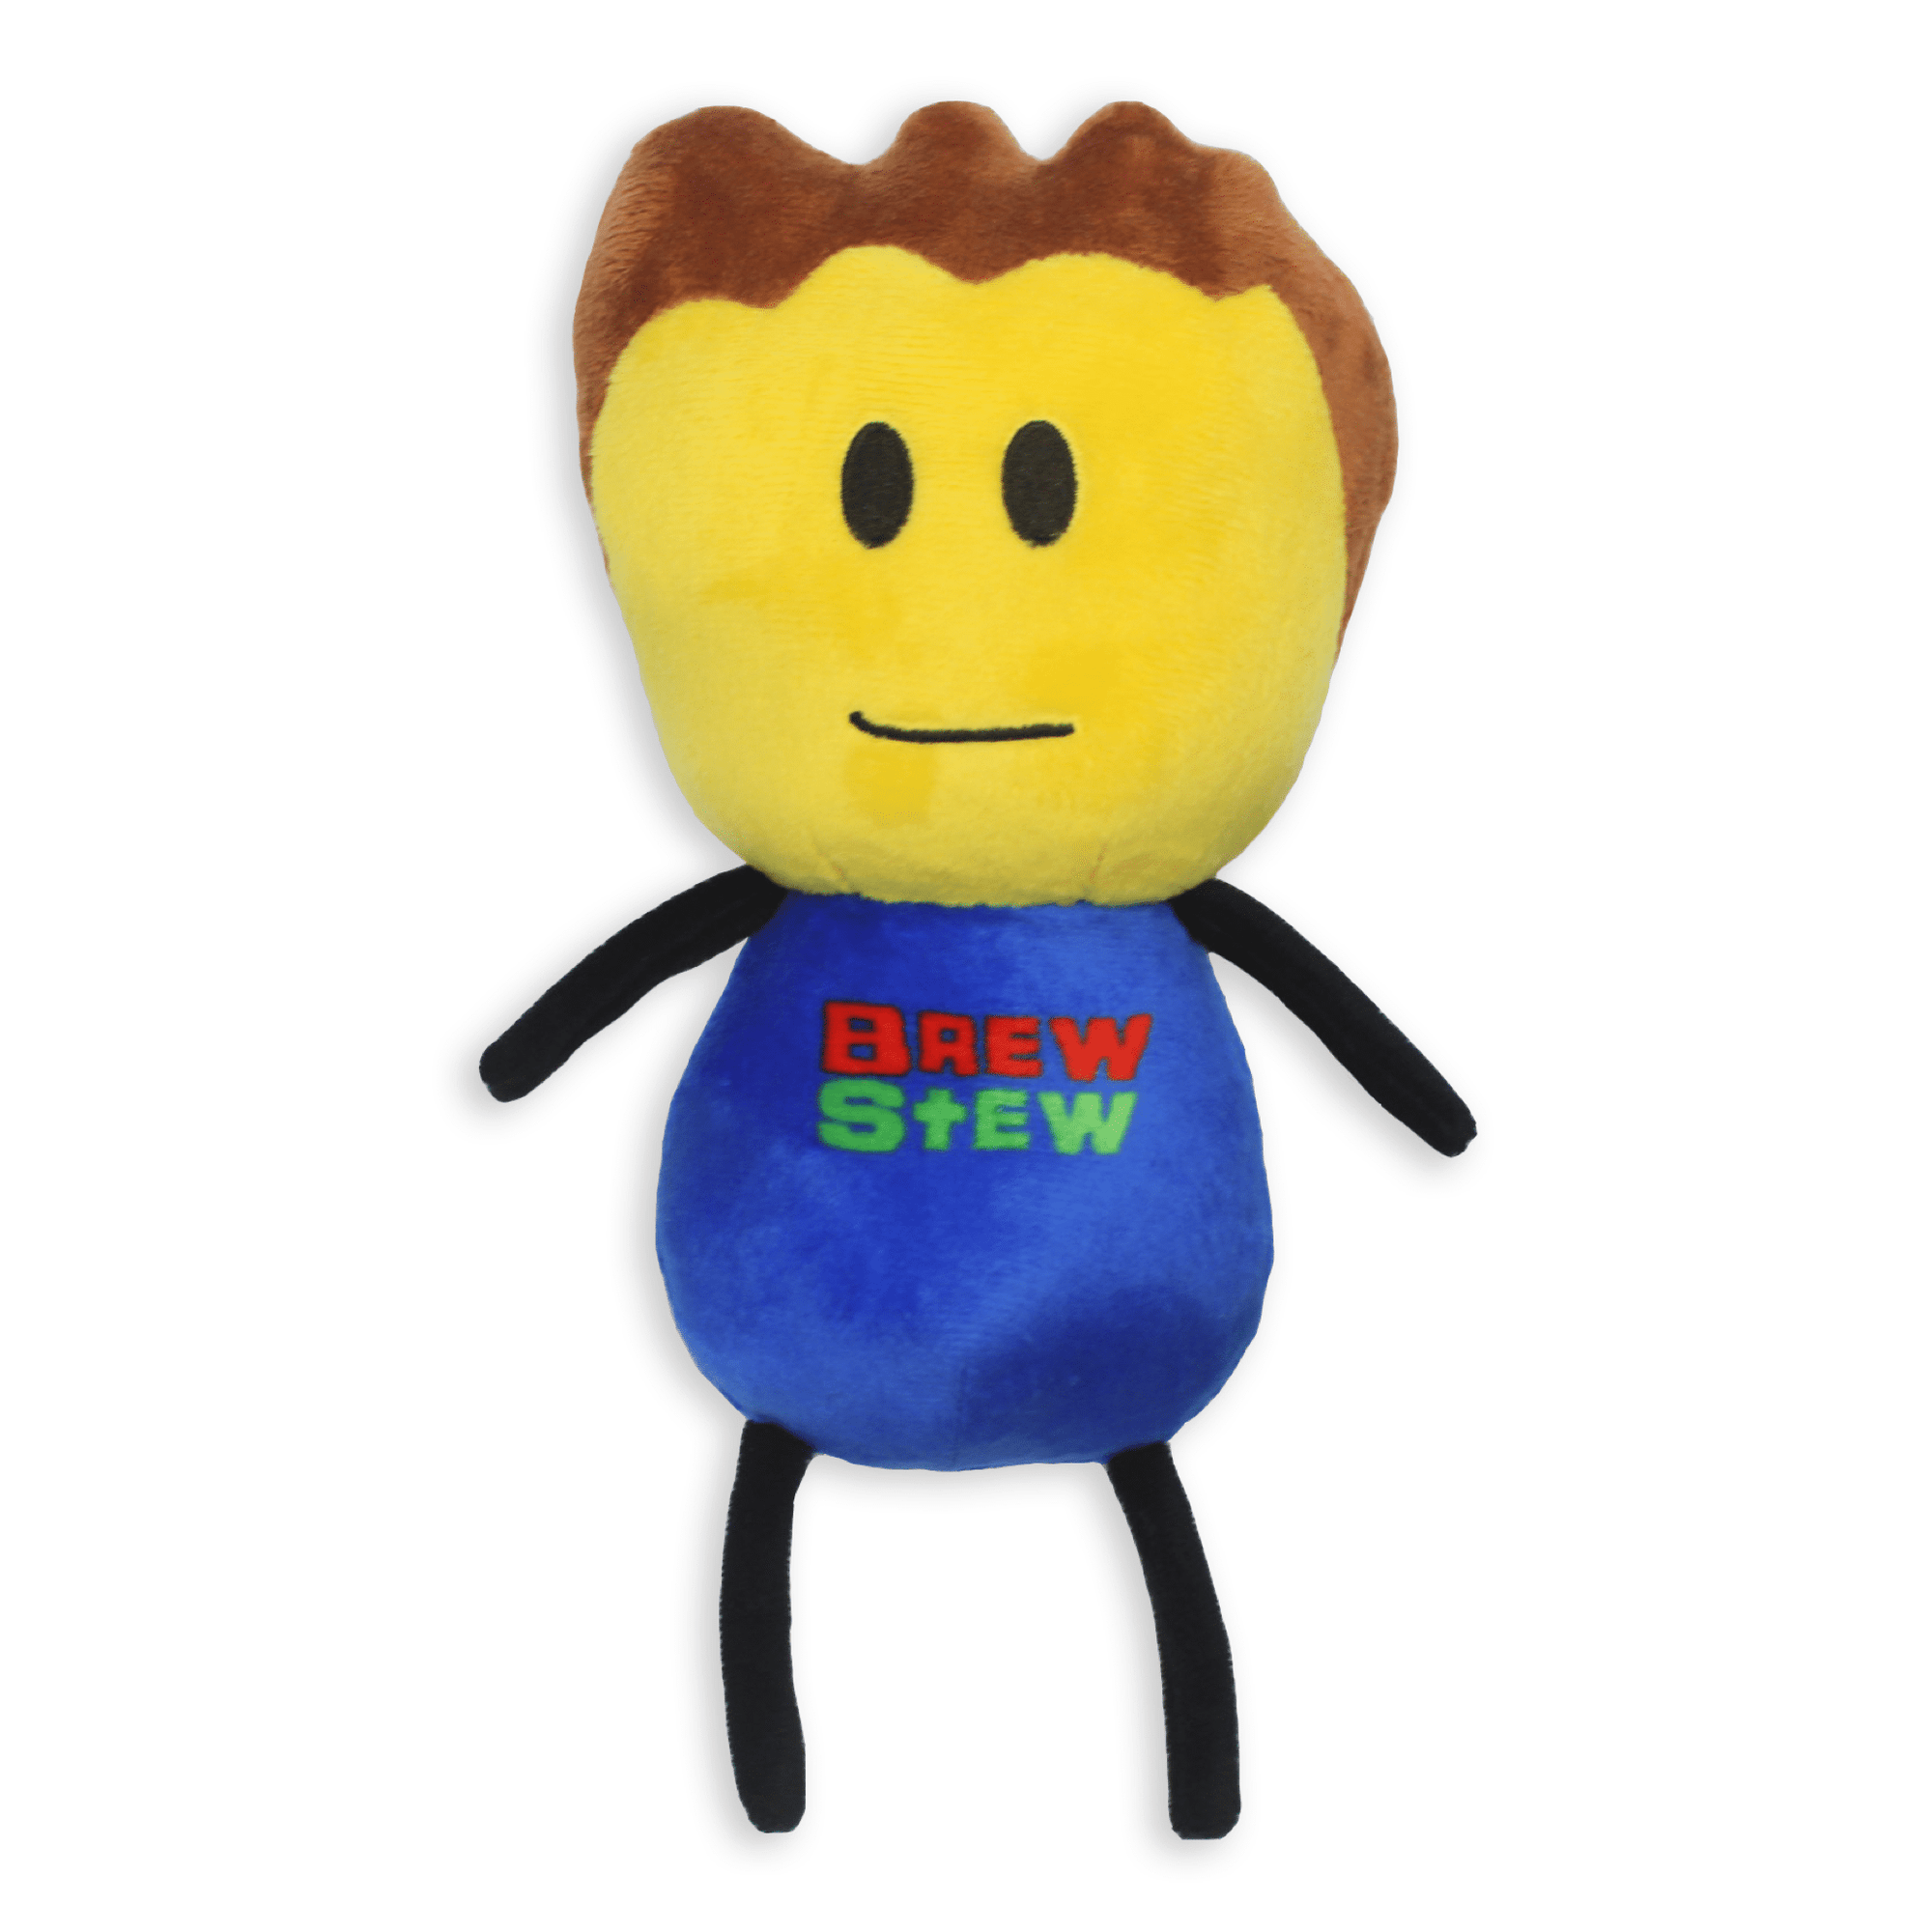 Brewstew Plush Toy